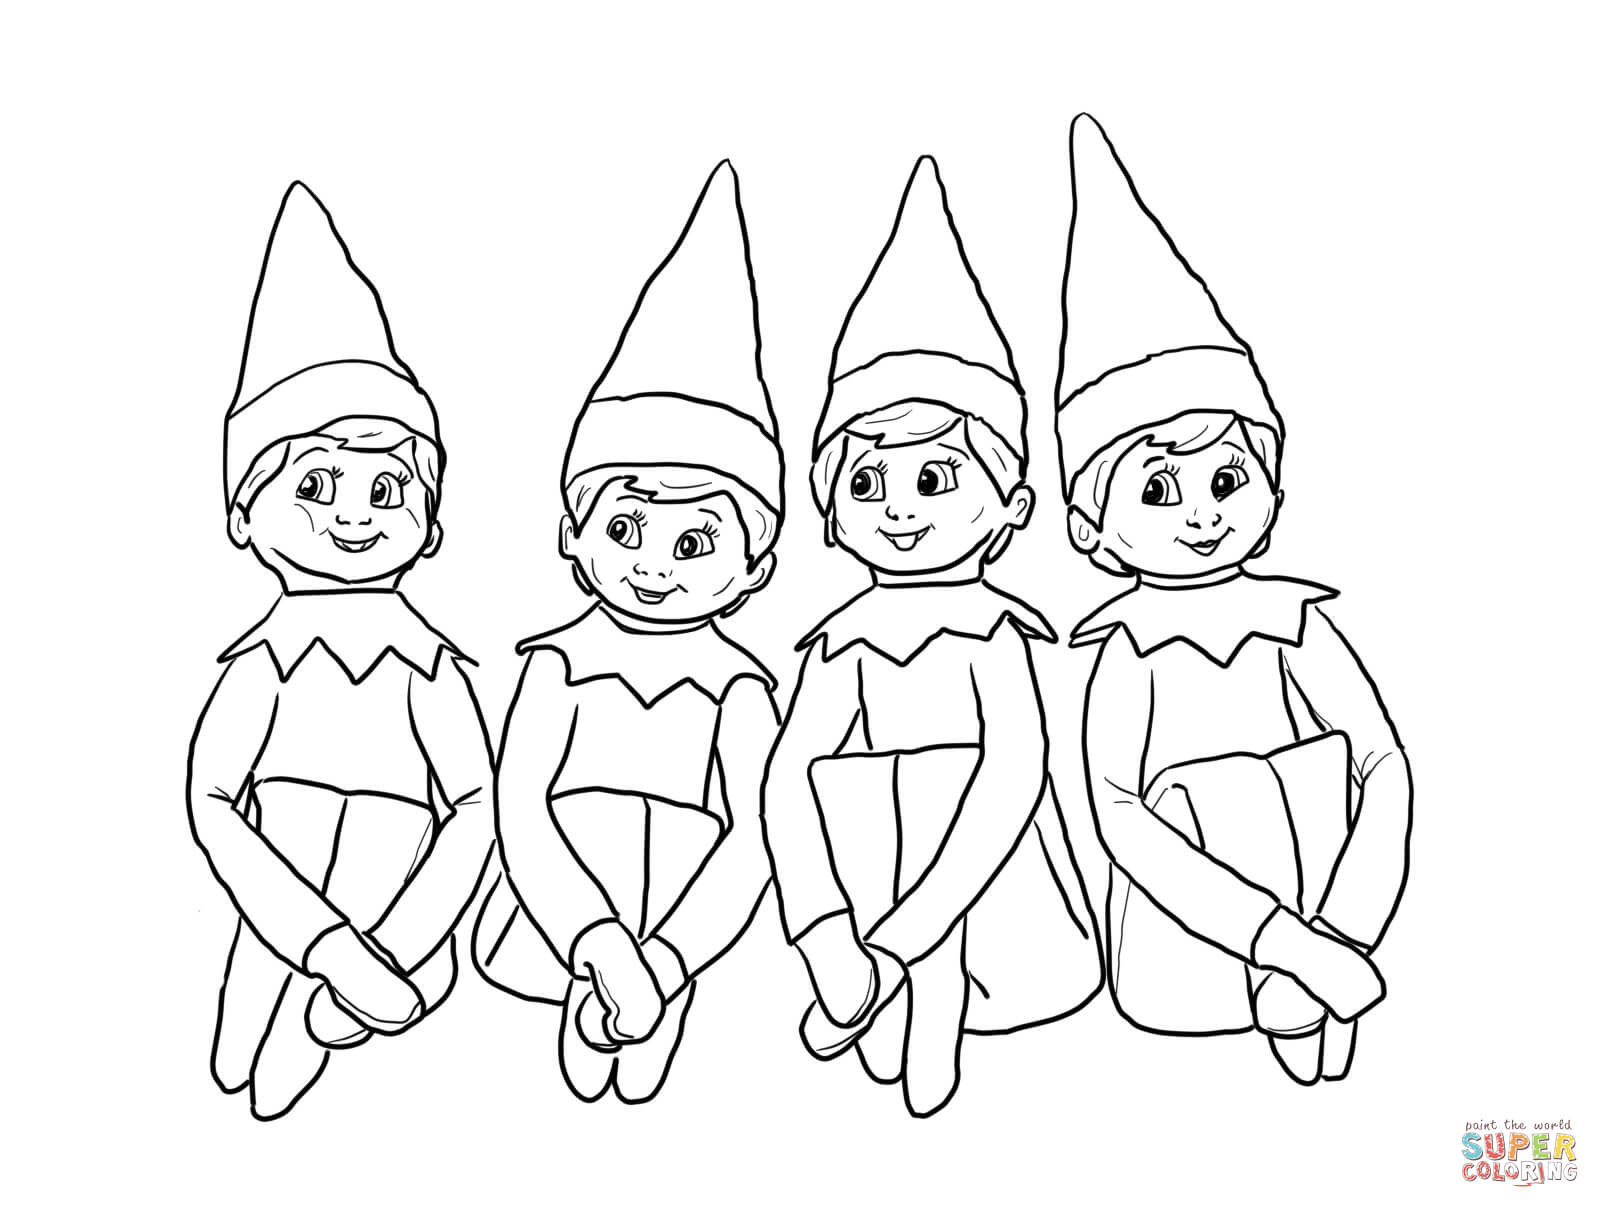 Santa S Elves Coloring Pages With Elf Sheets 2 And 6 Wordsare Me